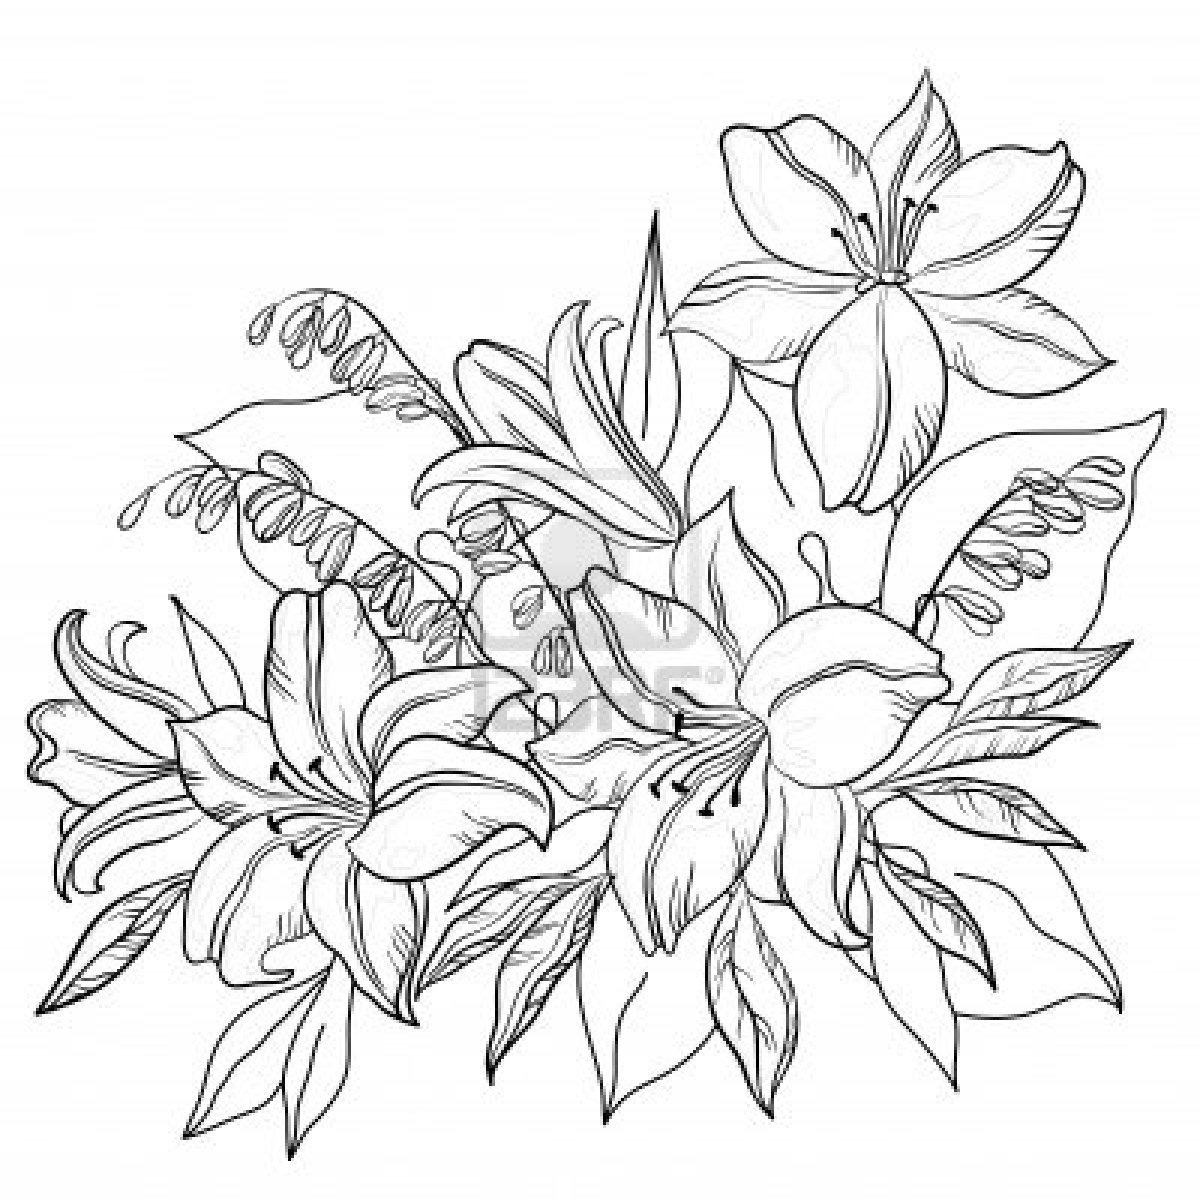 coloring outline images of flowers sunbeamflowers flowers outlines images outline flowers of coloring